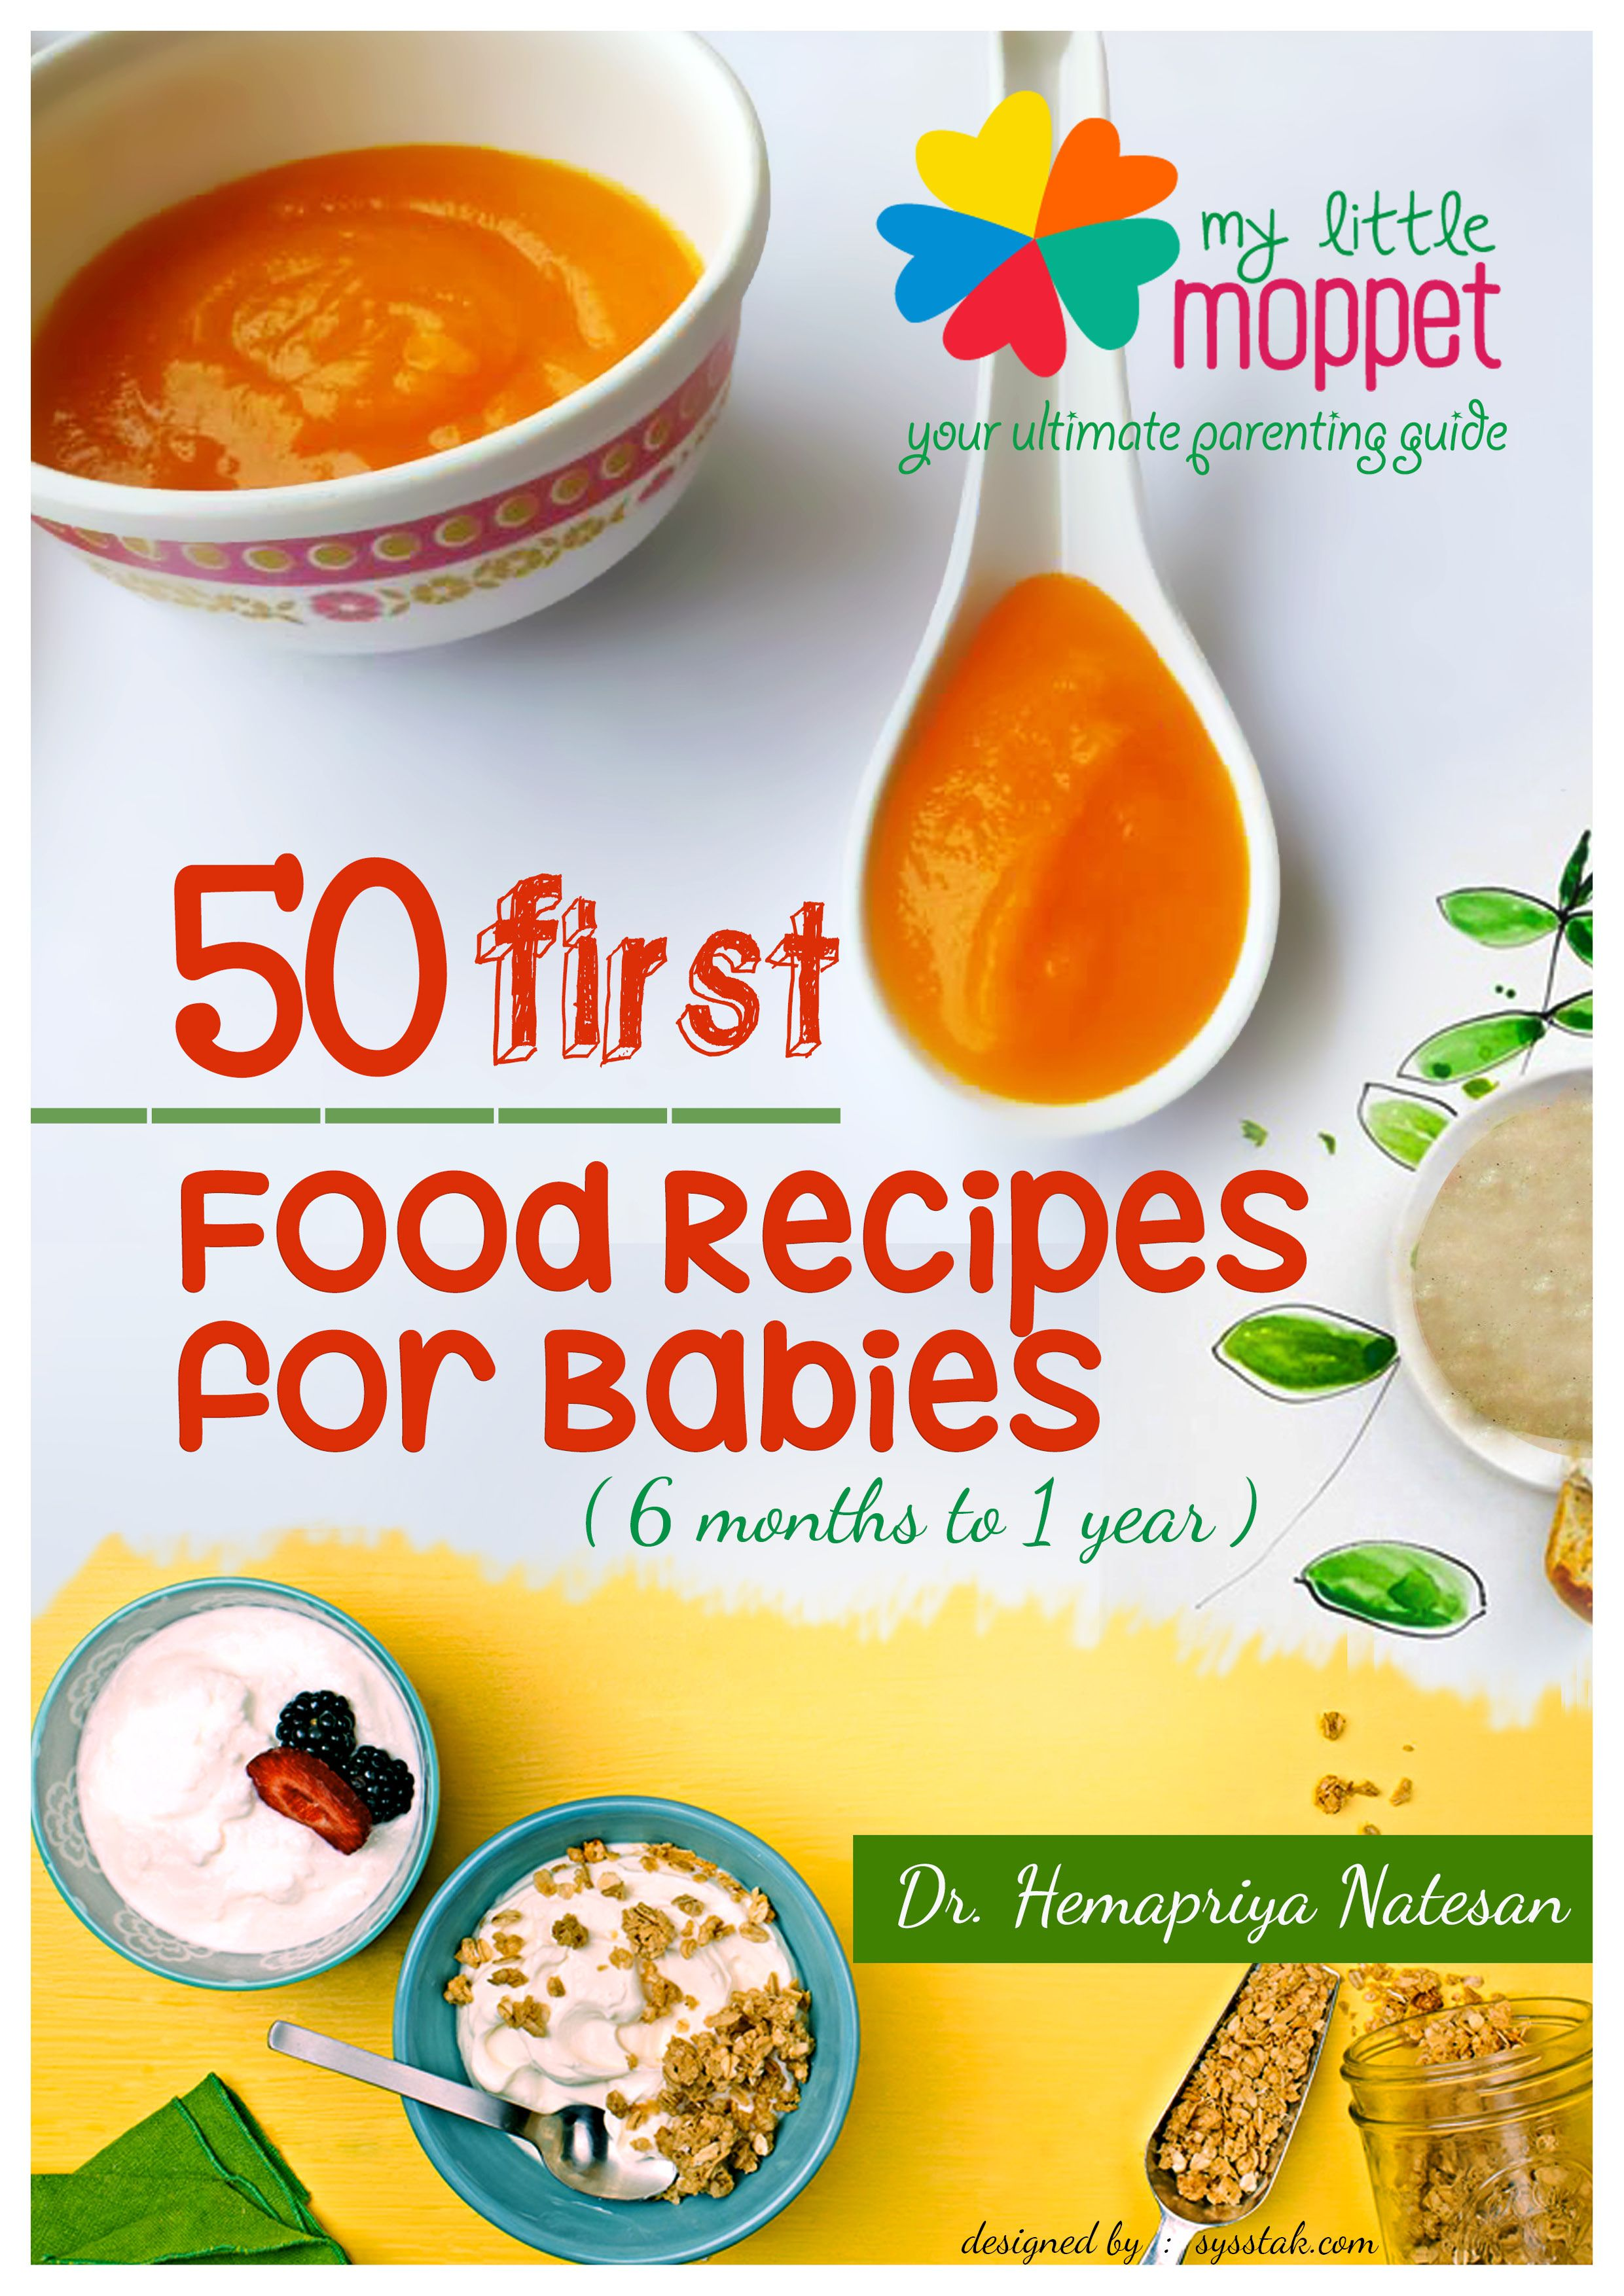 Free e book 50 first food recipes for babies baby food recipes free e book 50 first food recipes for babies my little moppet forumfinder Images